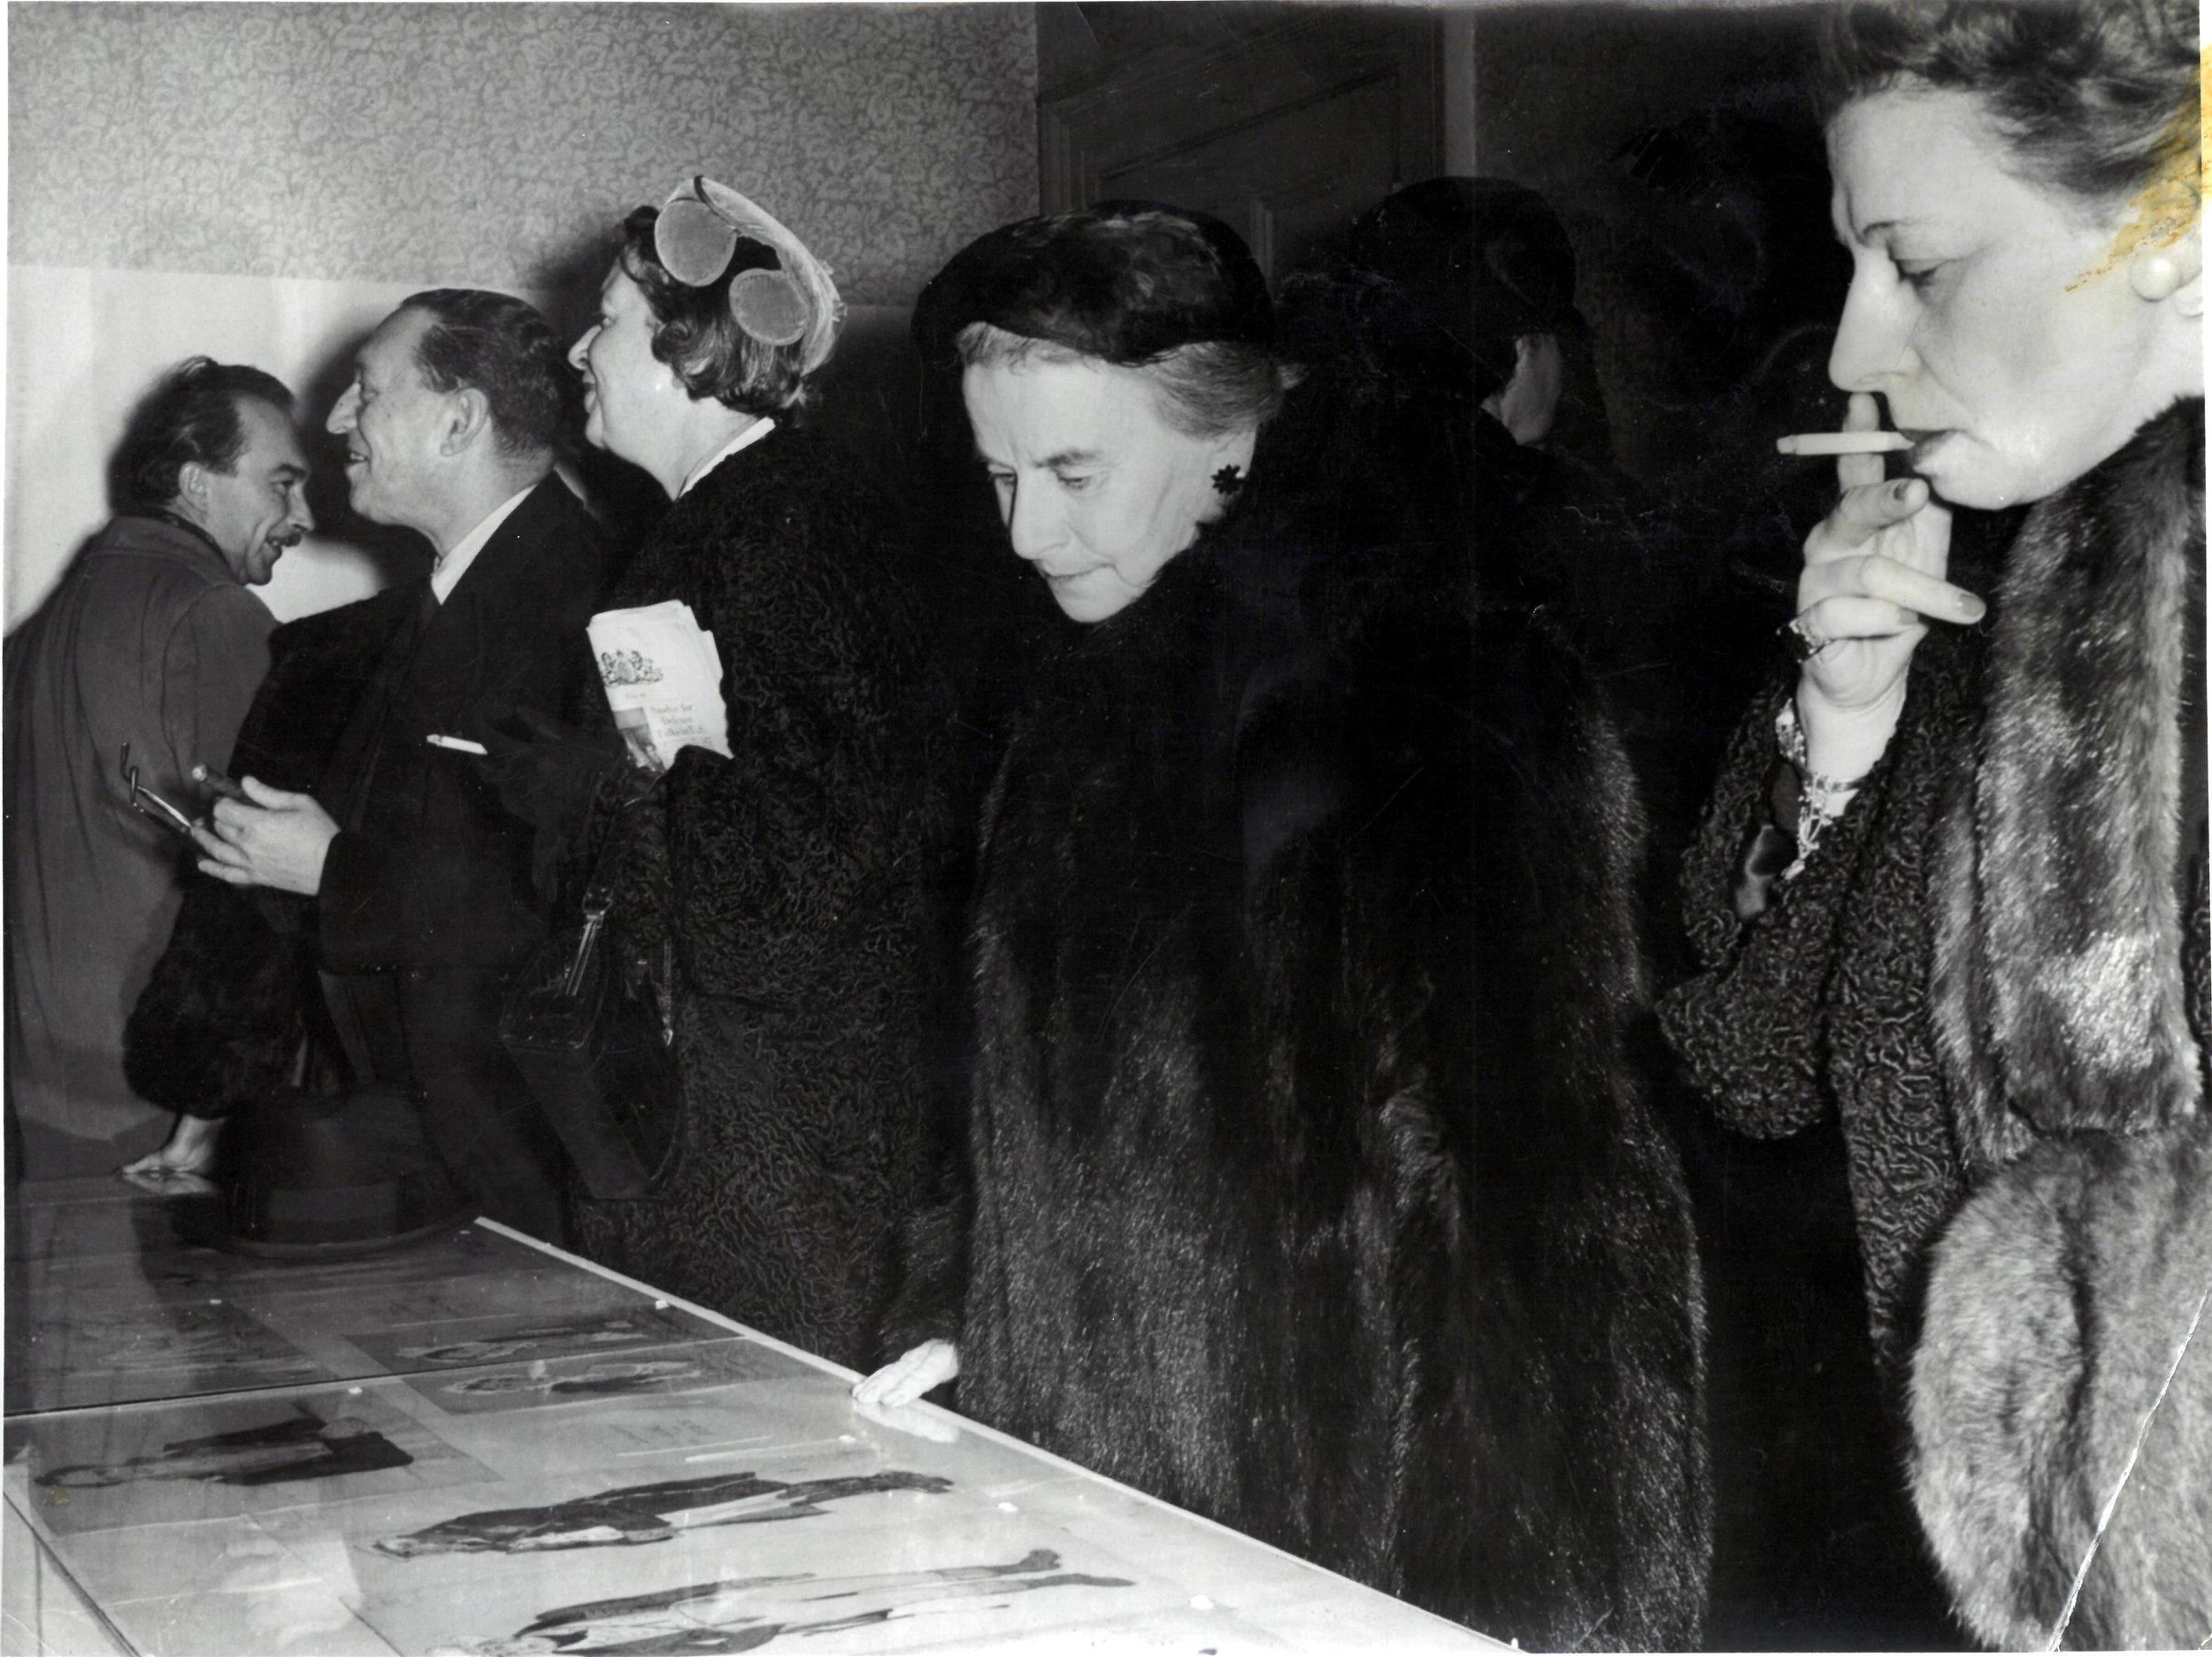 Opening of Mstislav Dobuzhinsky exhibition at Pushkin House, 19th January 1957. In the centre - Dame Marie Rambert.  From the Pushkin House archive.